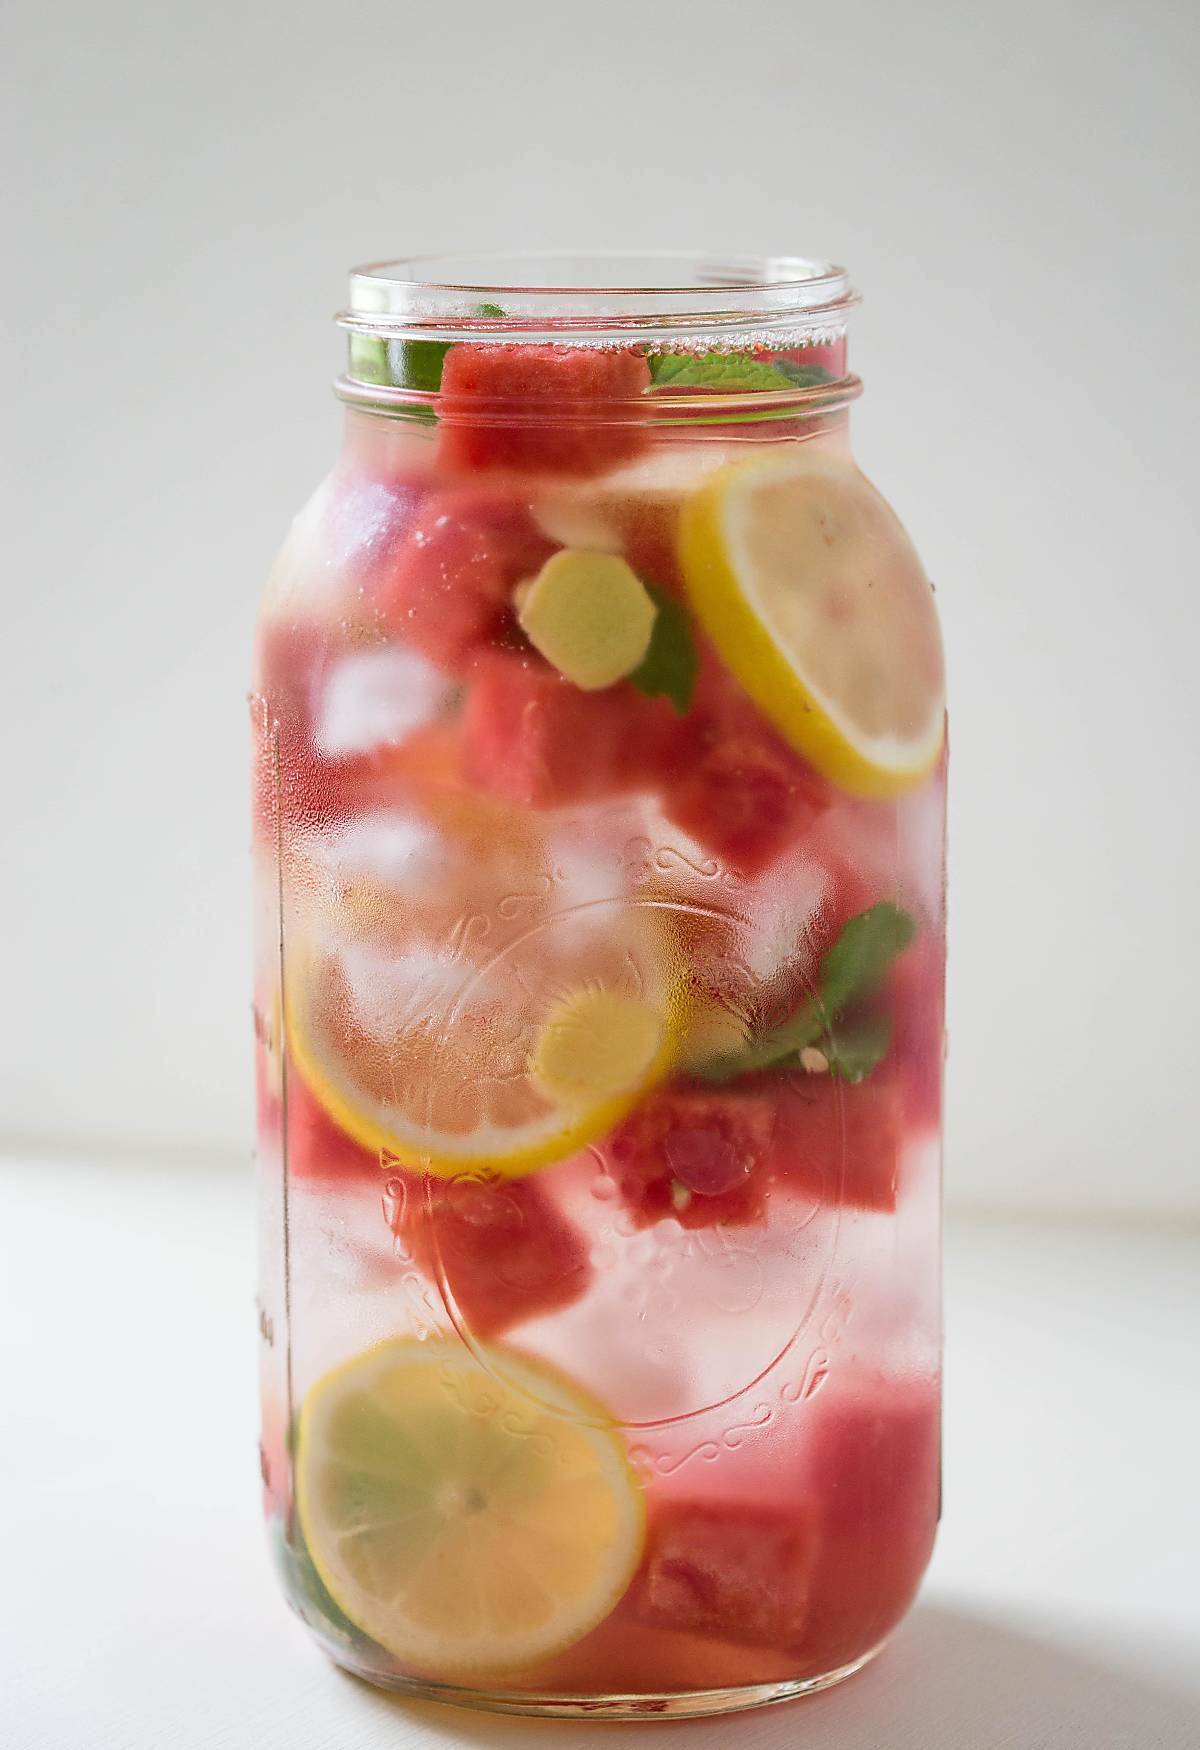 Refreshing Watermelon Detox Water - give a healthy twist to your regular drinking water with fresh watermelon, lemon, mint, and some ginger.